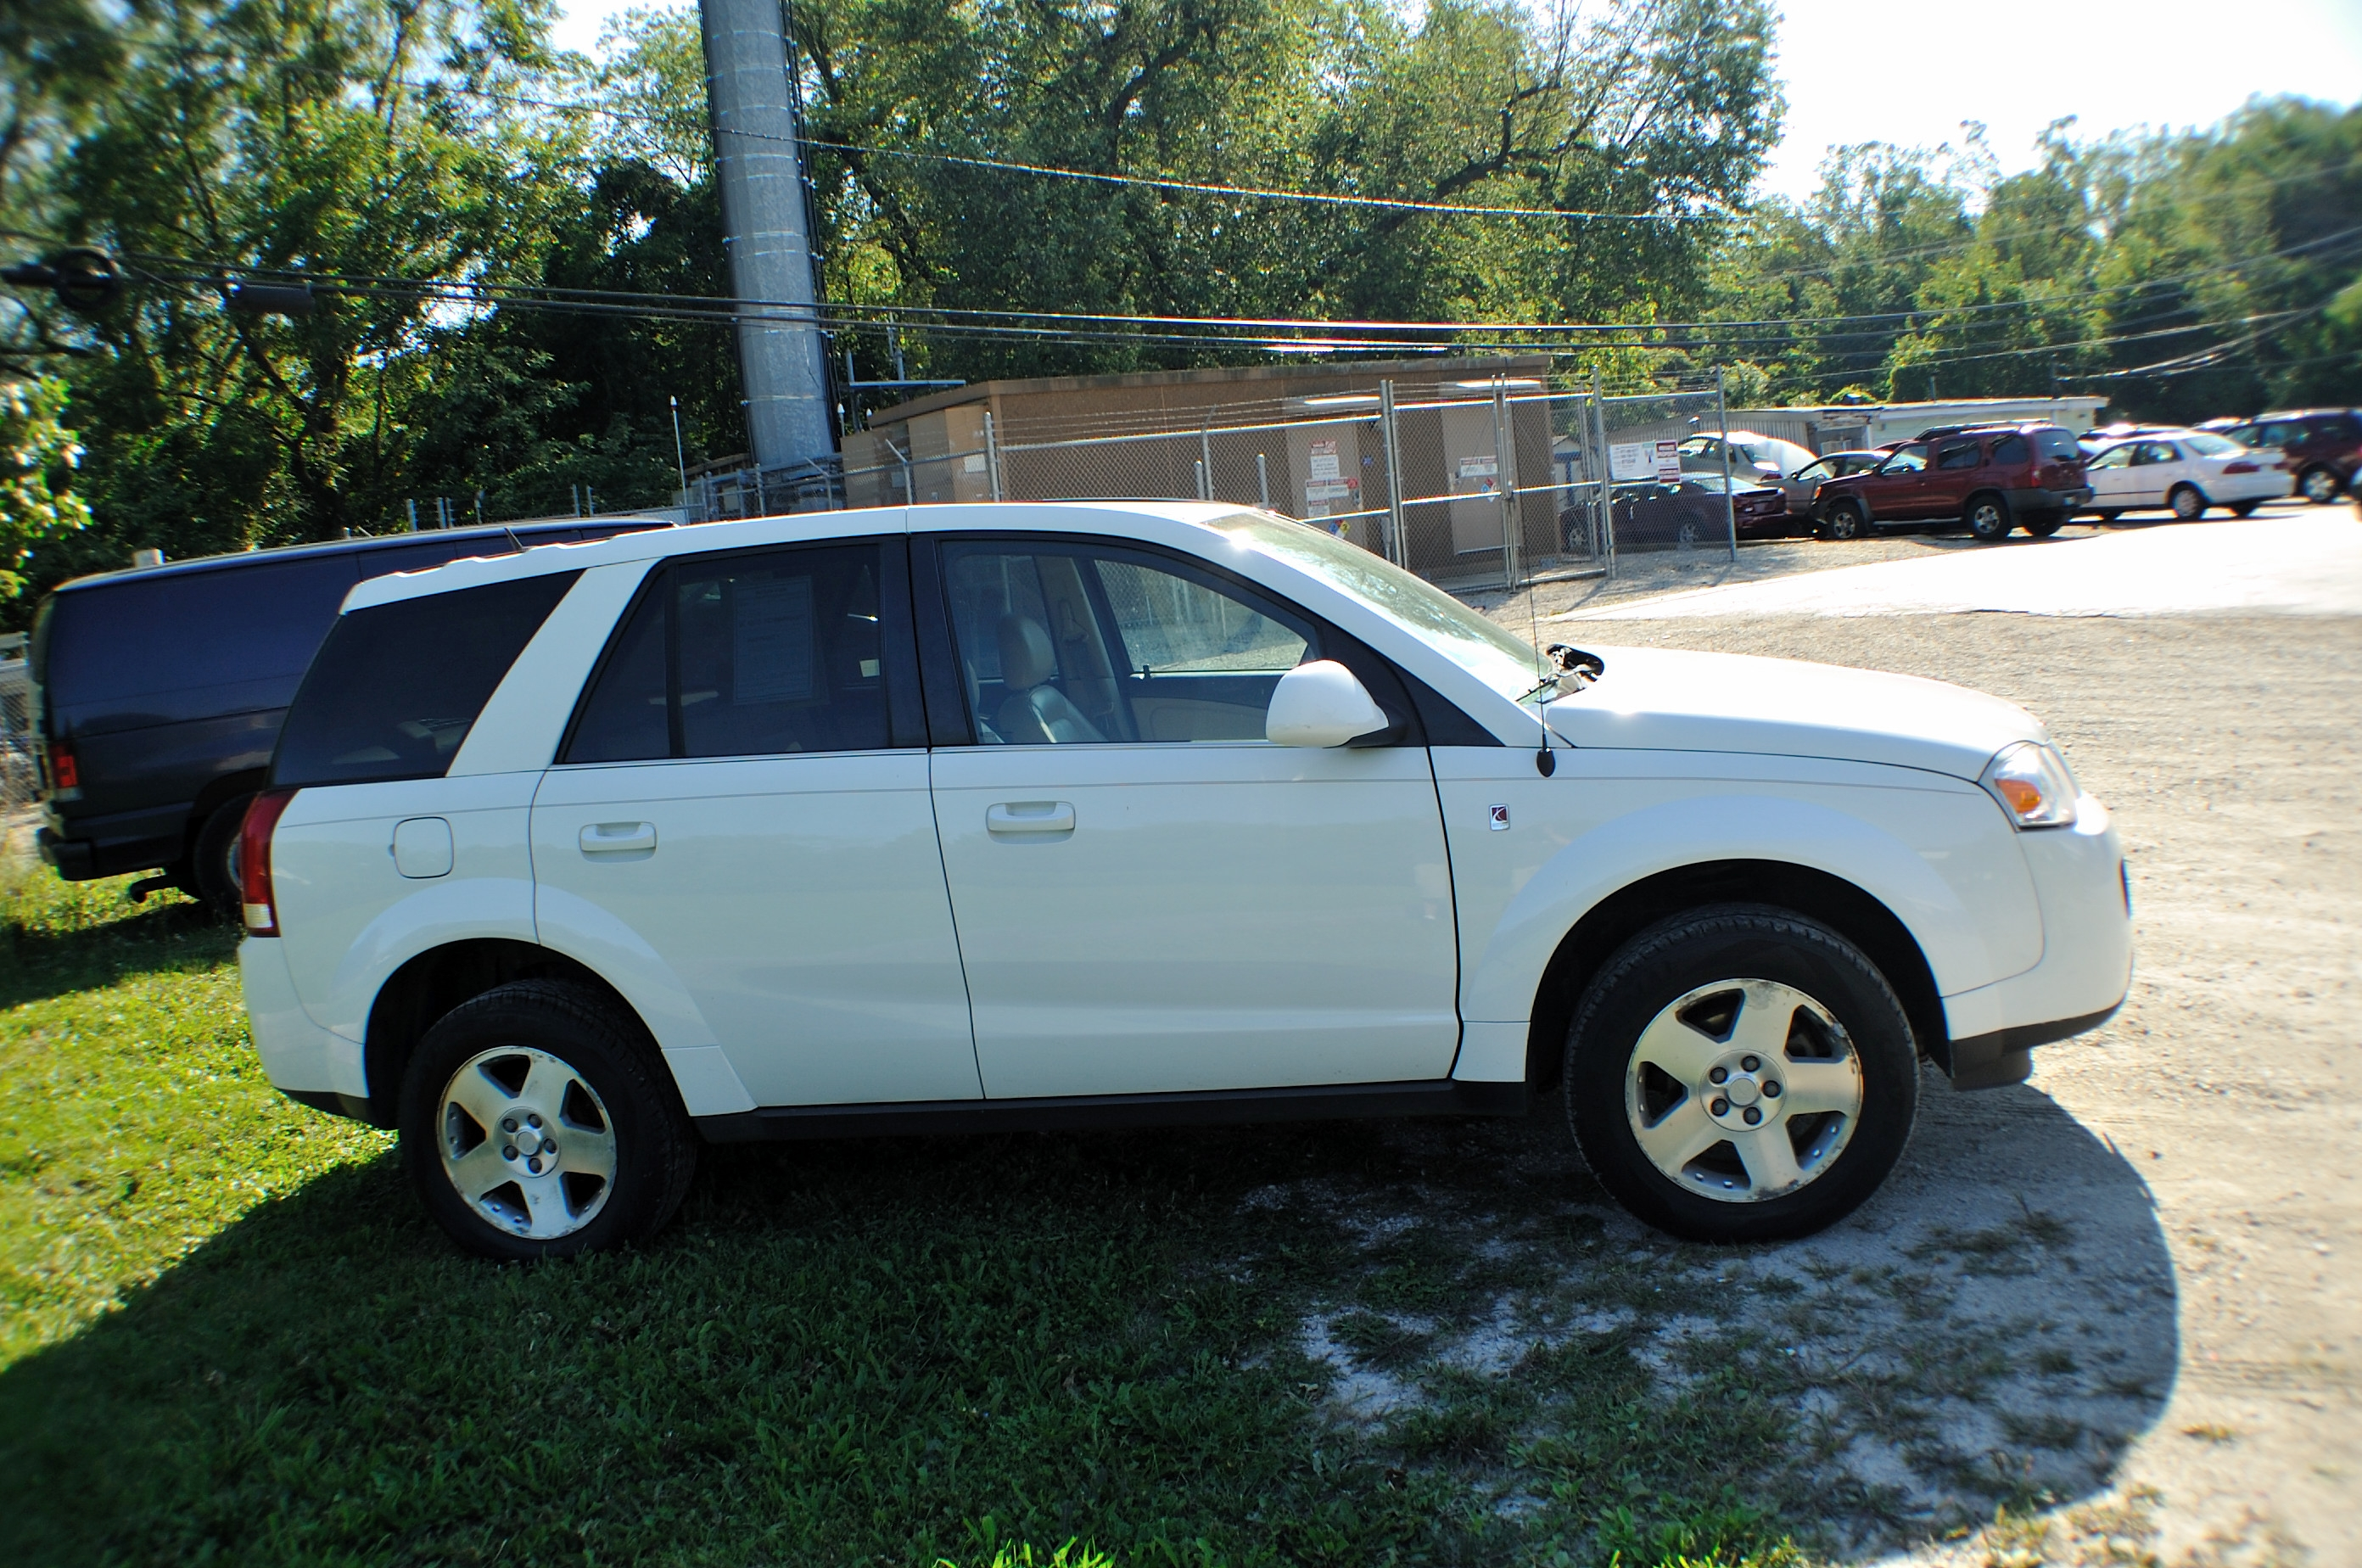 2007 Saturn Vue White AWD Navigation Used SUV Sale Bannockburn Barrington  Beach Park